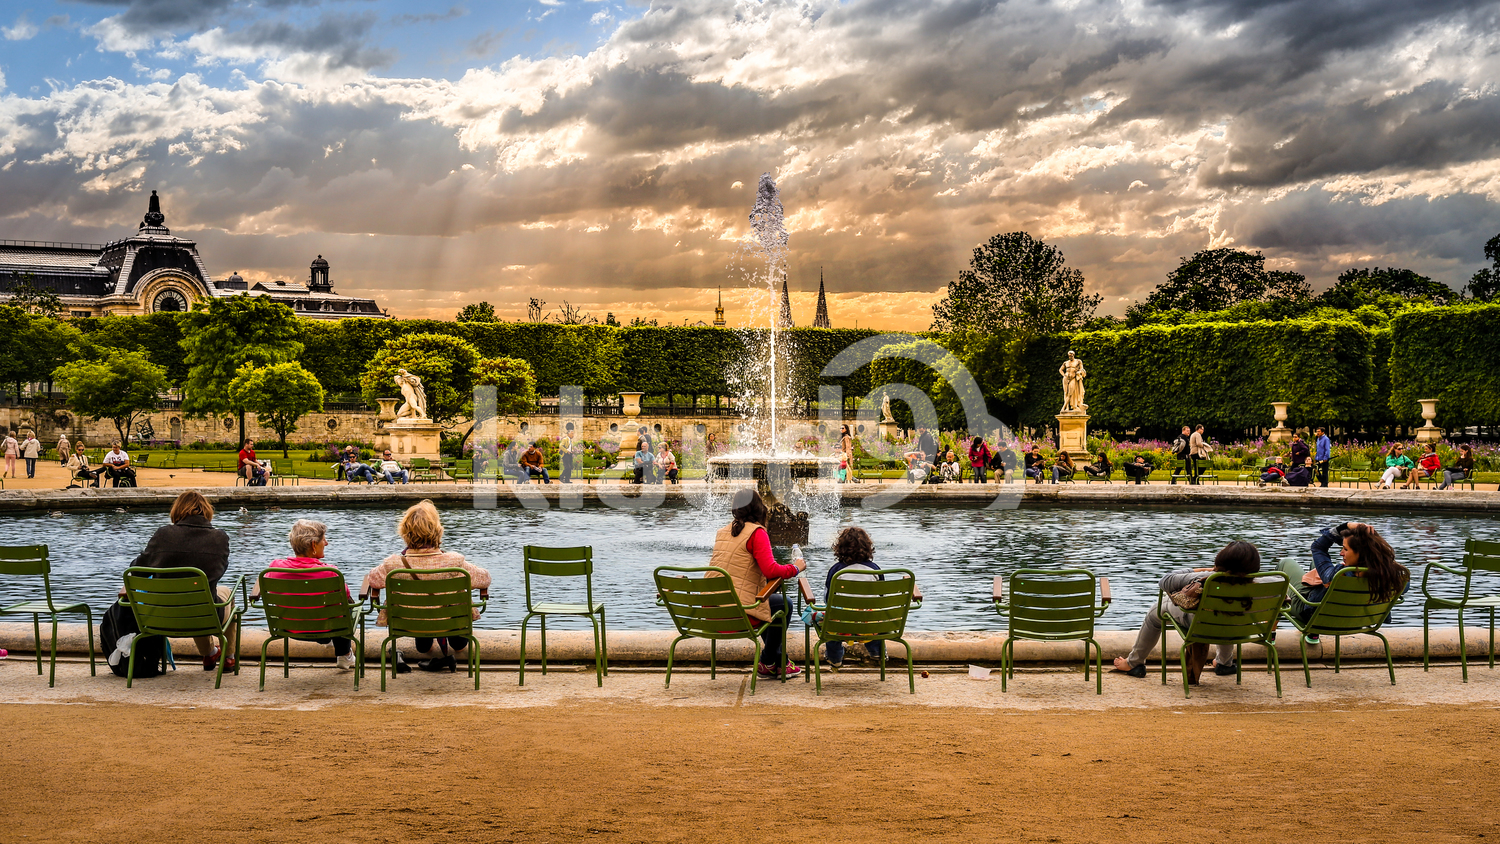 Fountain in Tuileries Garden